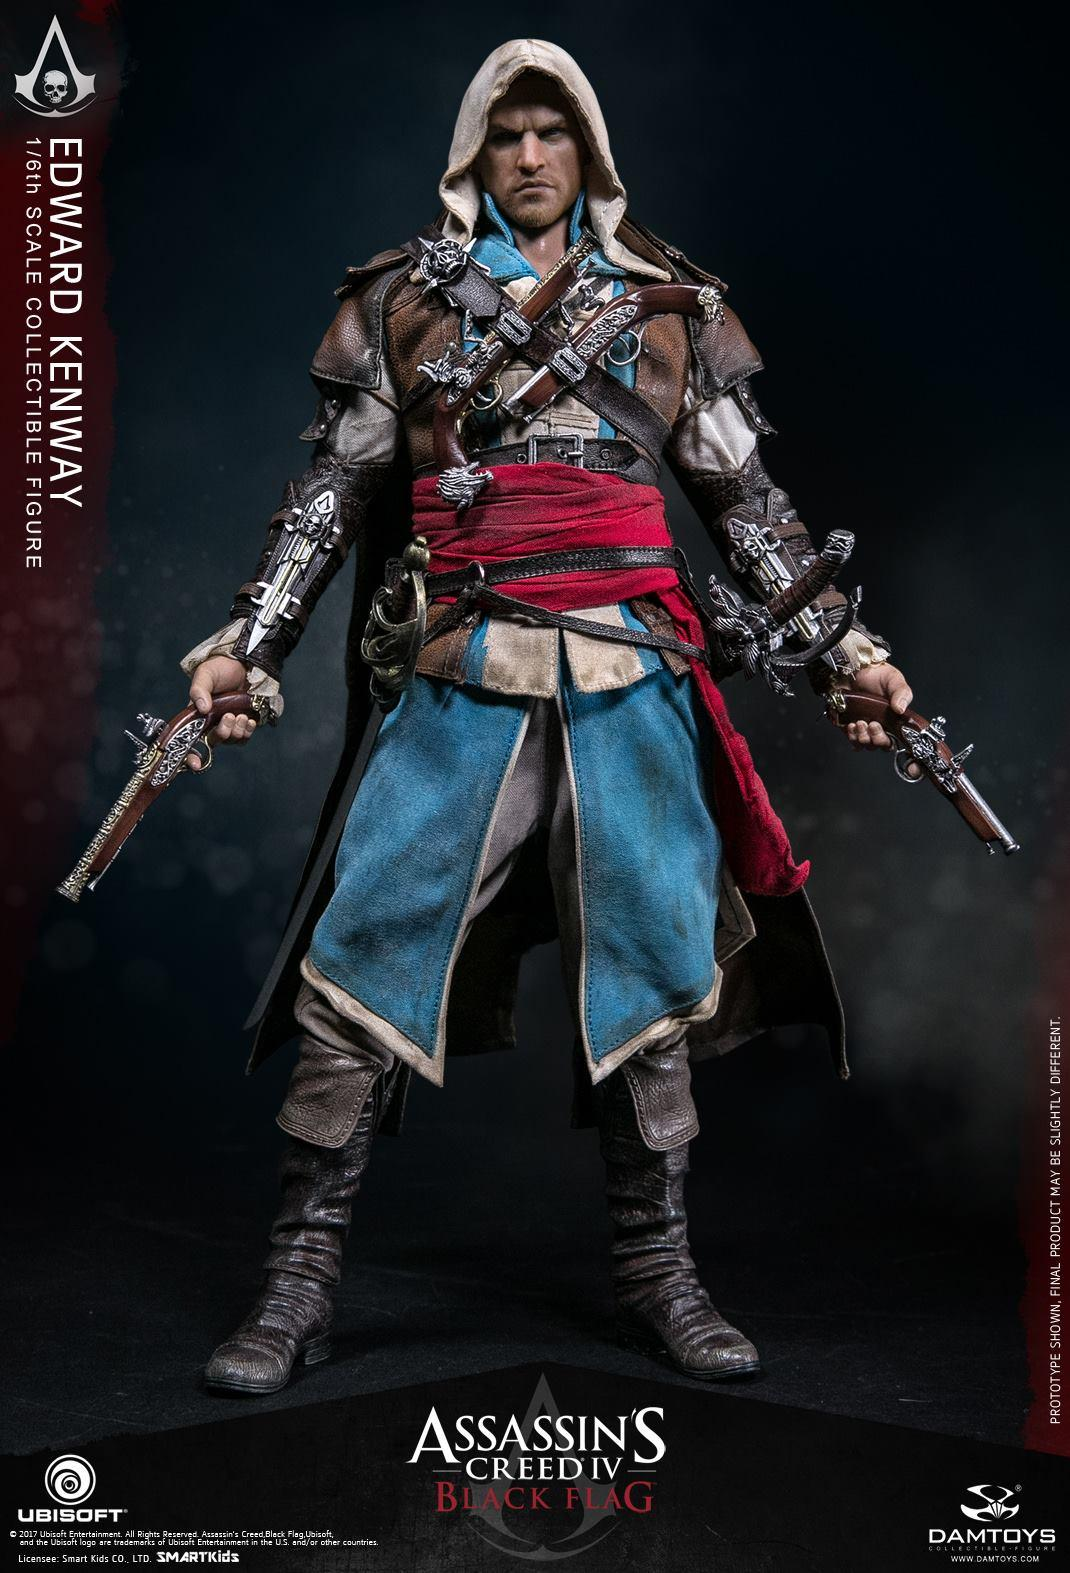 Onesixthscalepictures Dam Toys Assassin S Creed Iv Edward Kenway